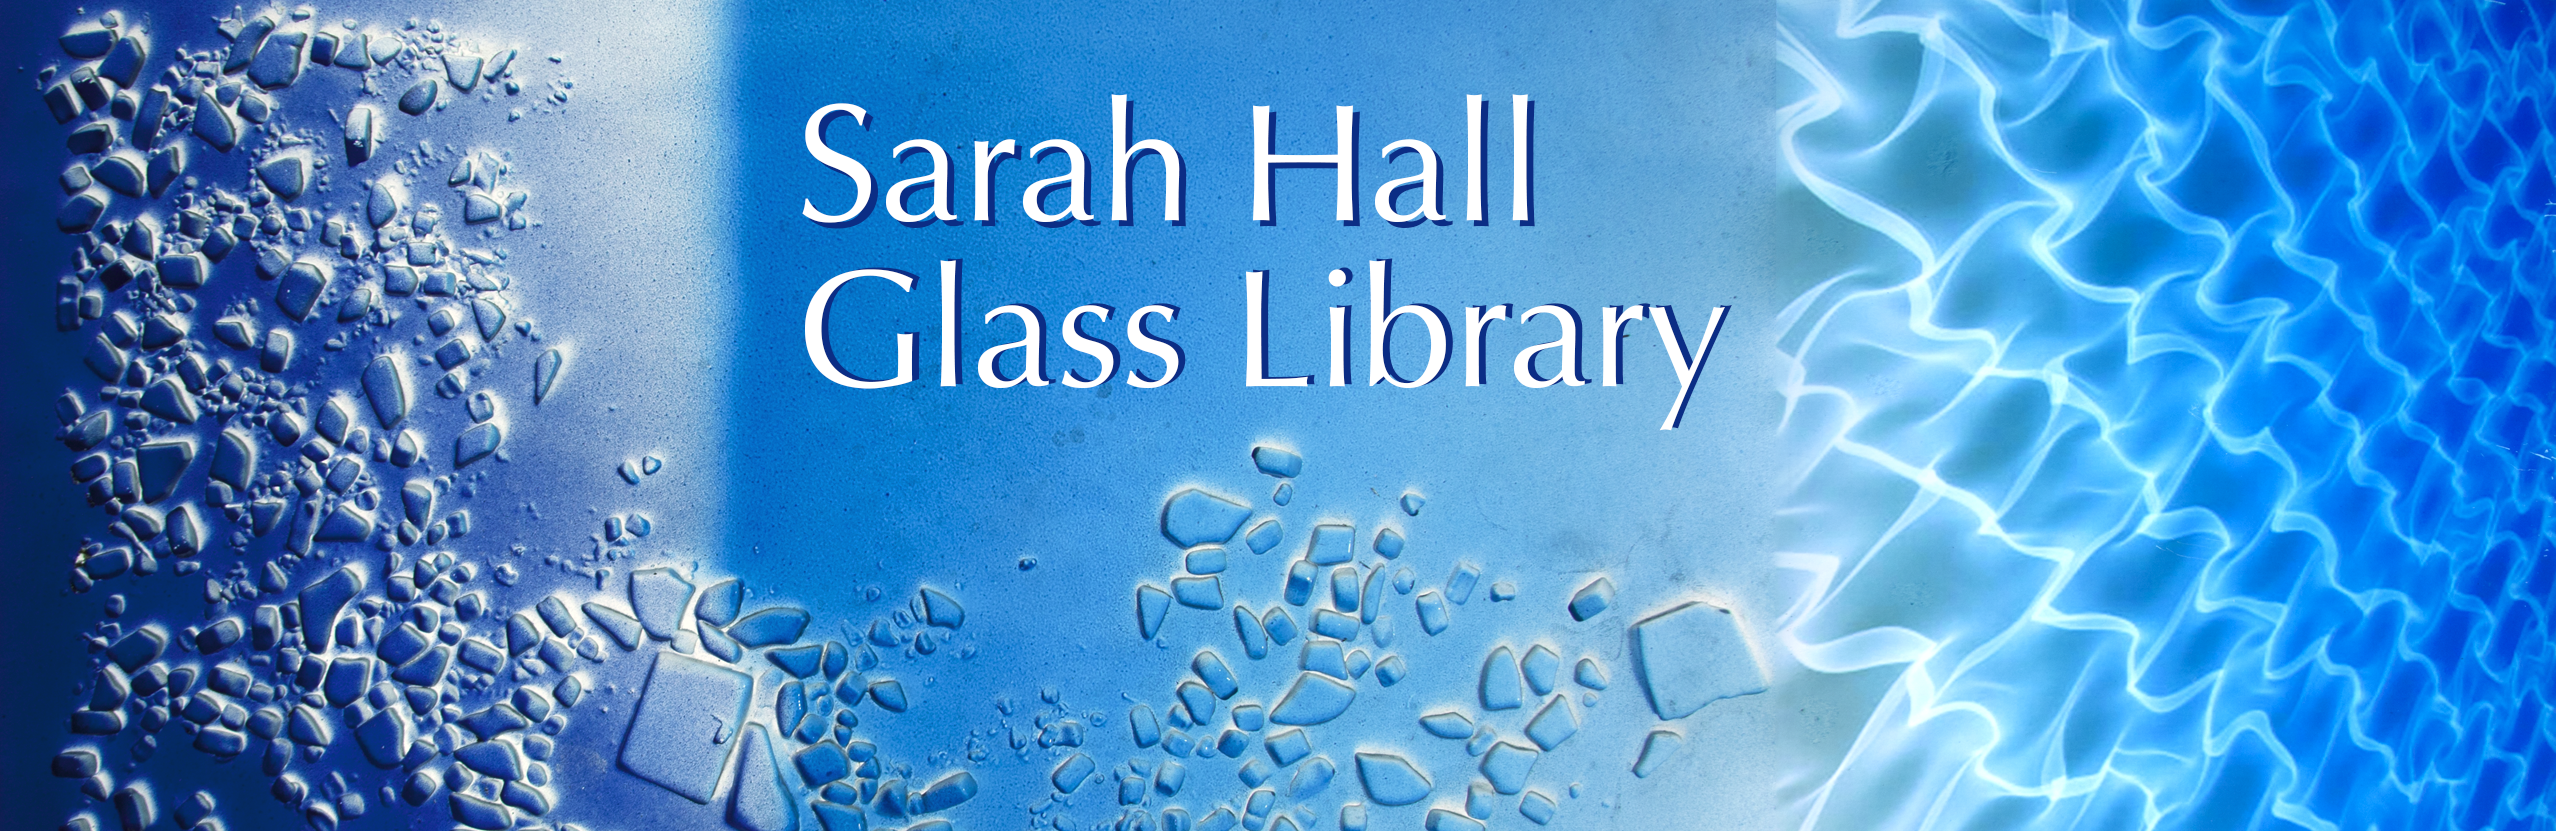 Sarah Hall Glass Library